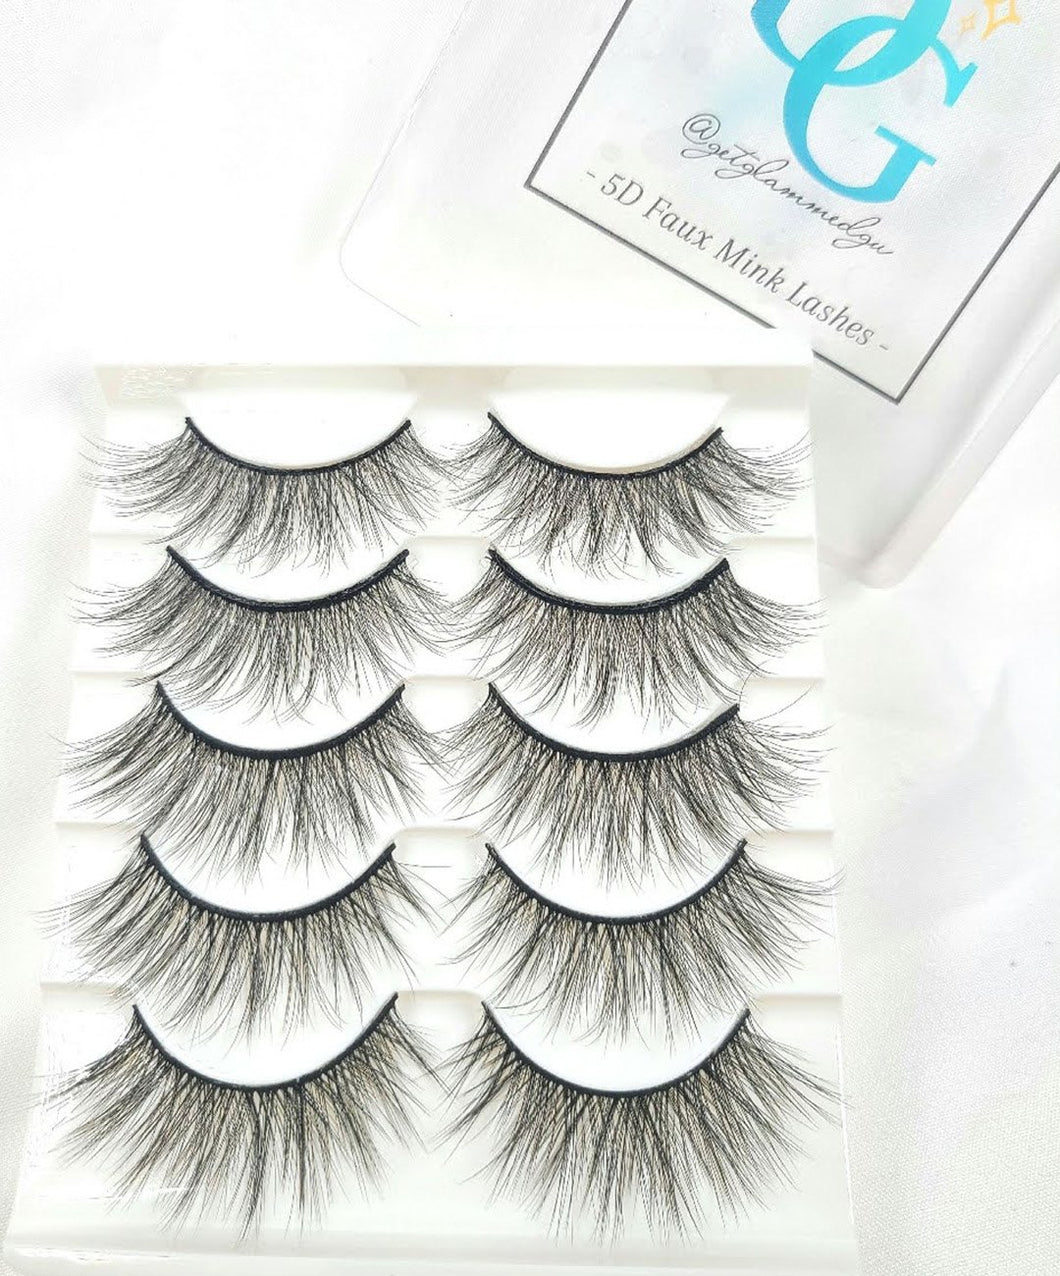 5D Lash Set: Trendy